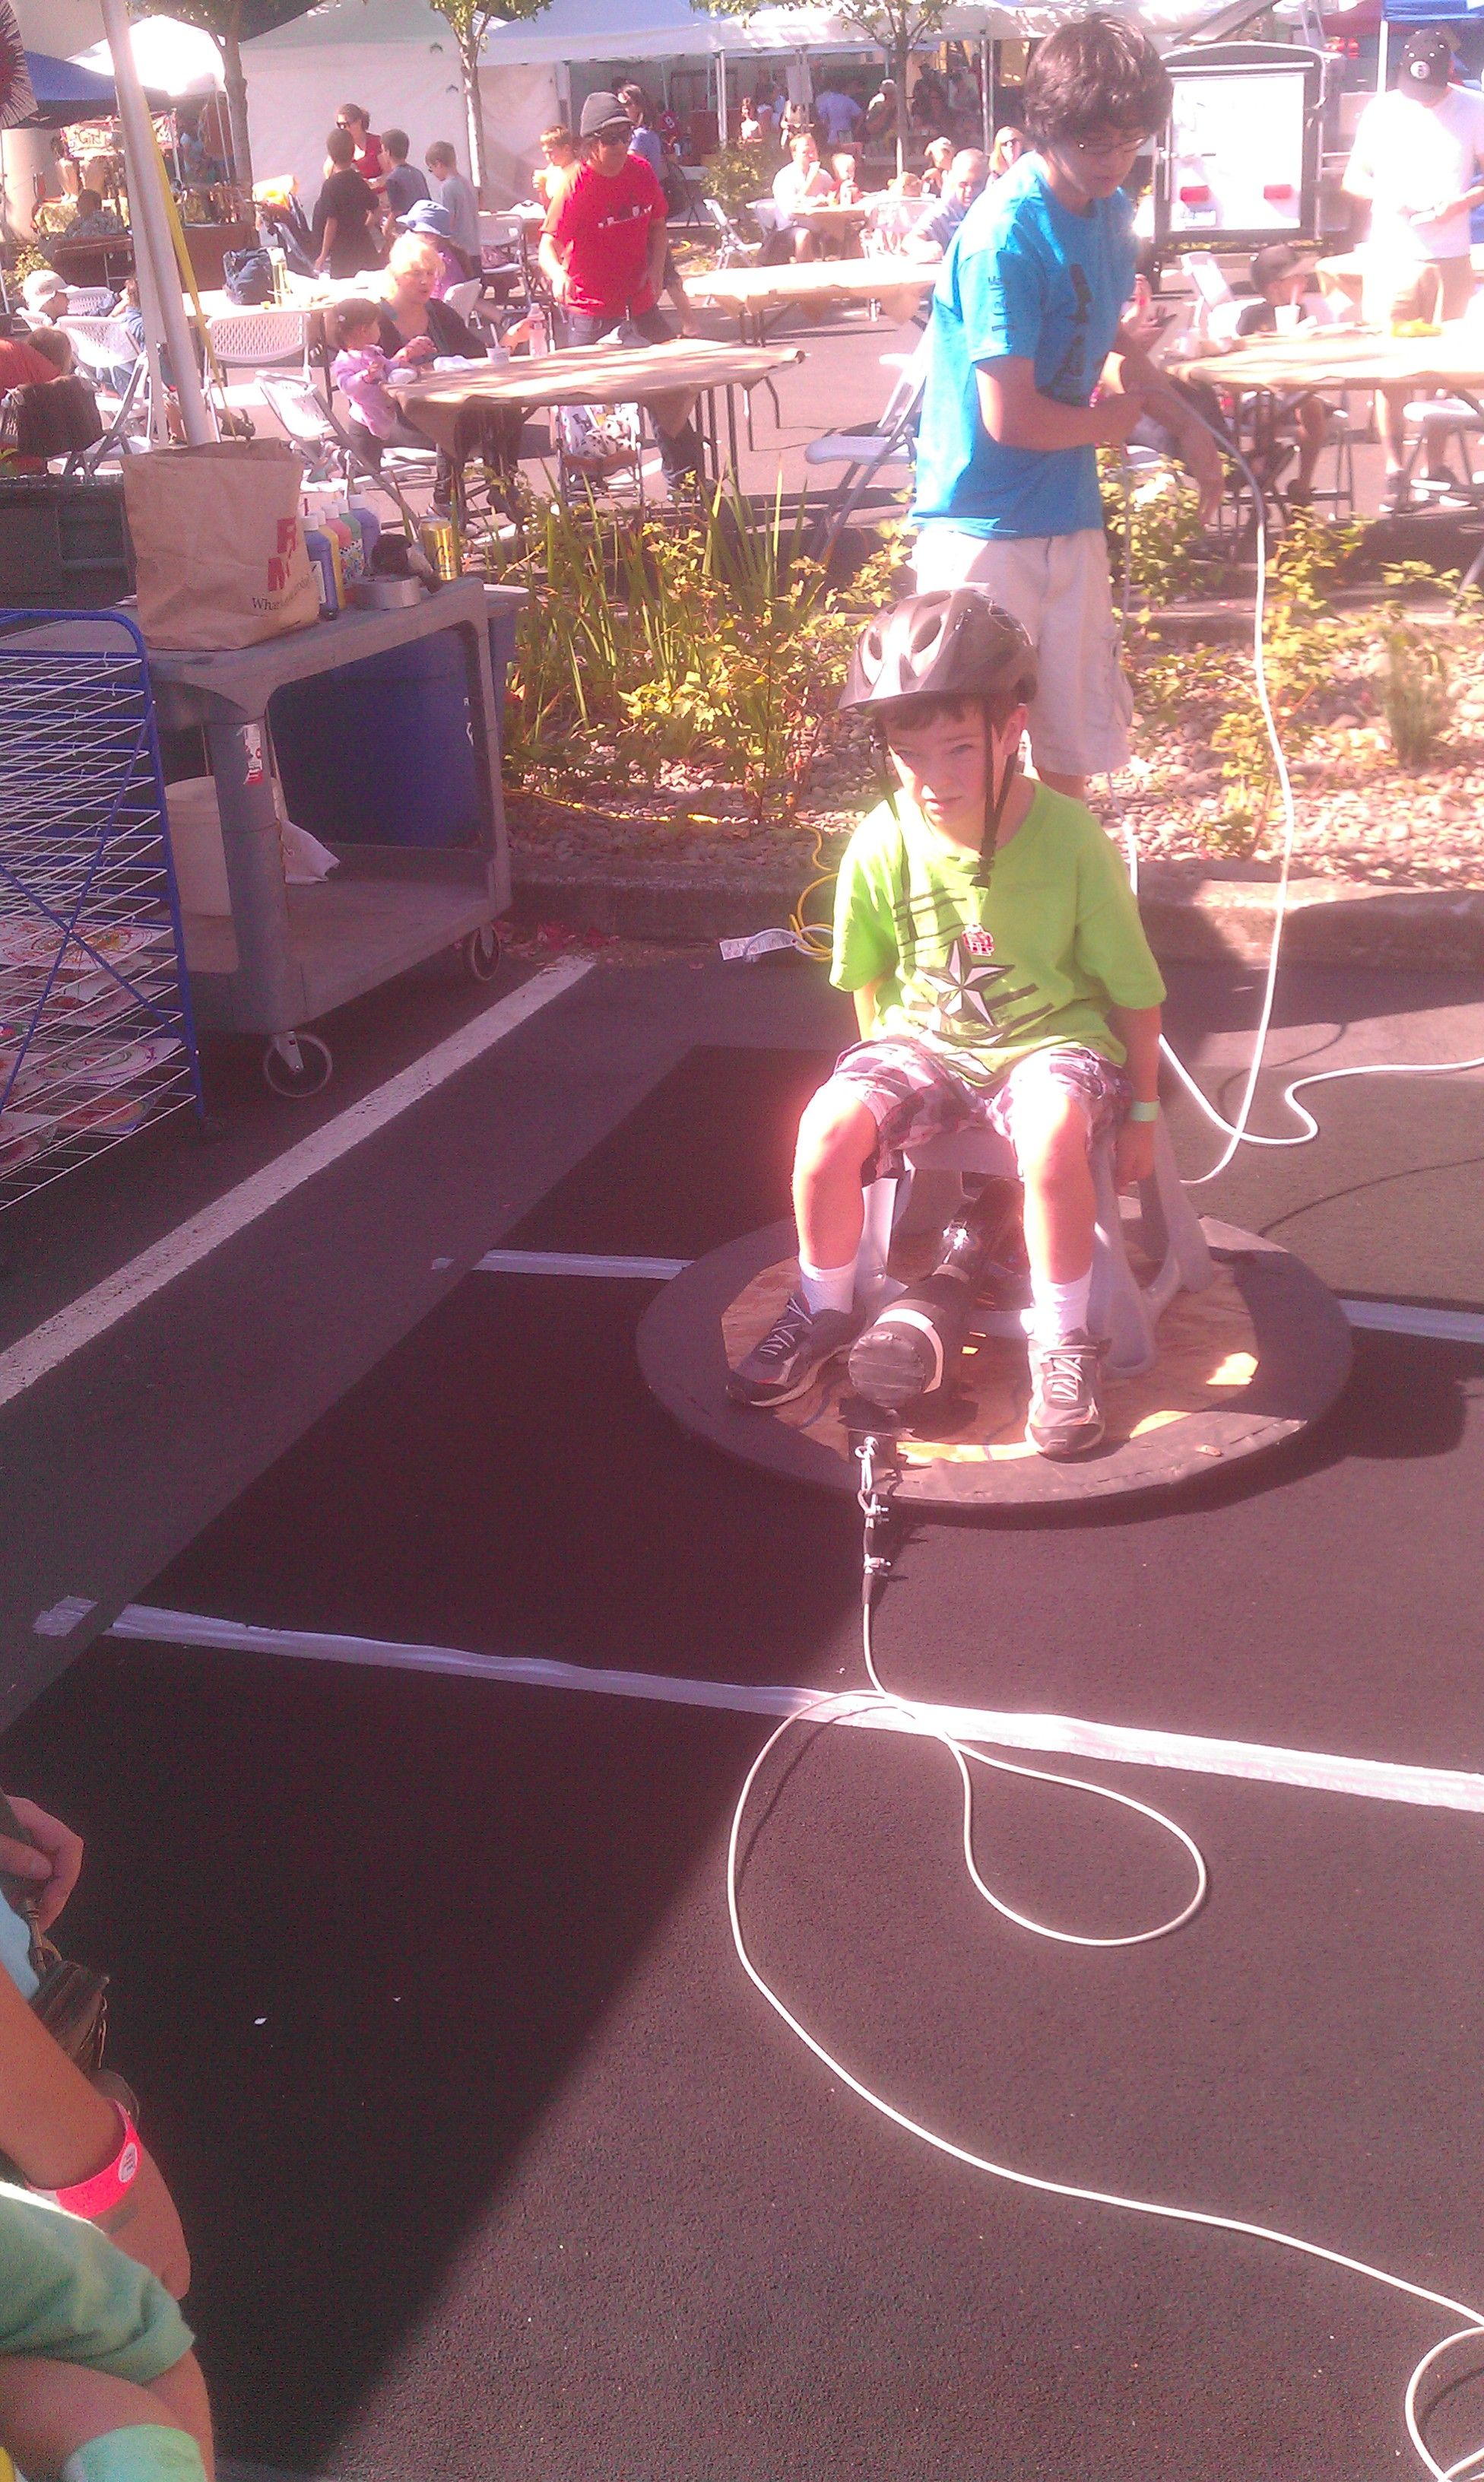 Andrew riding a hovercraft